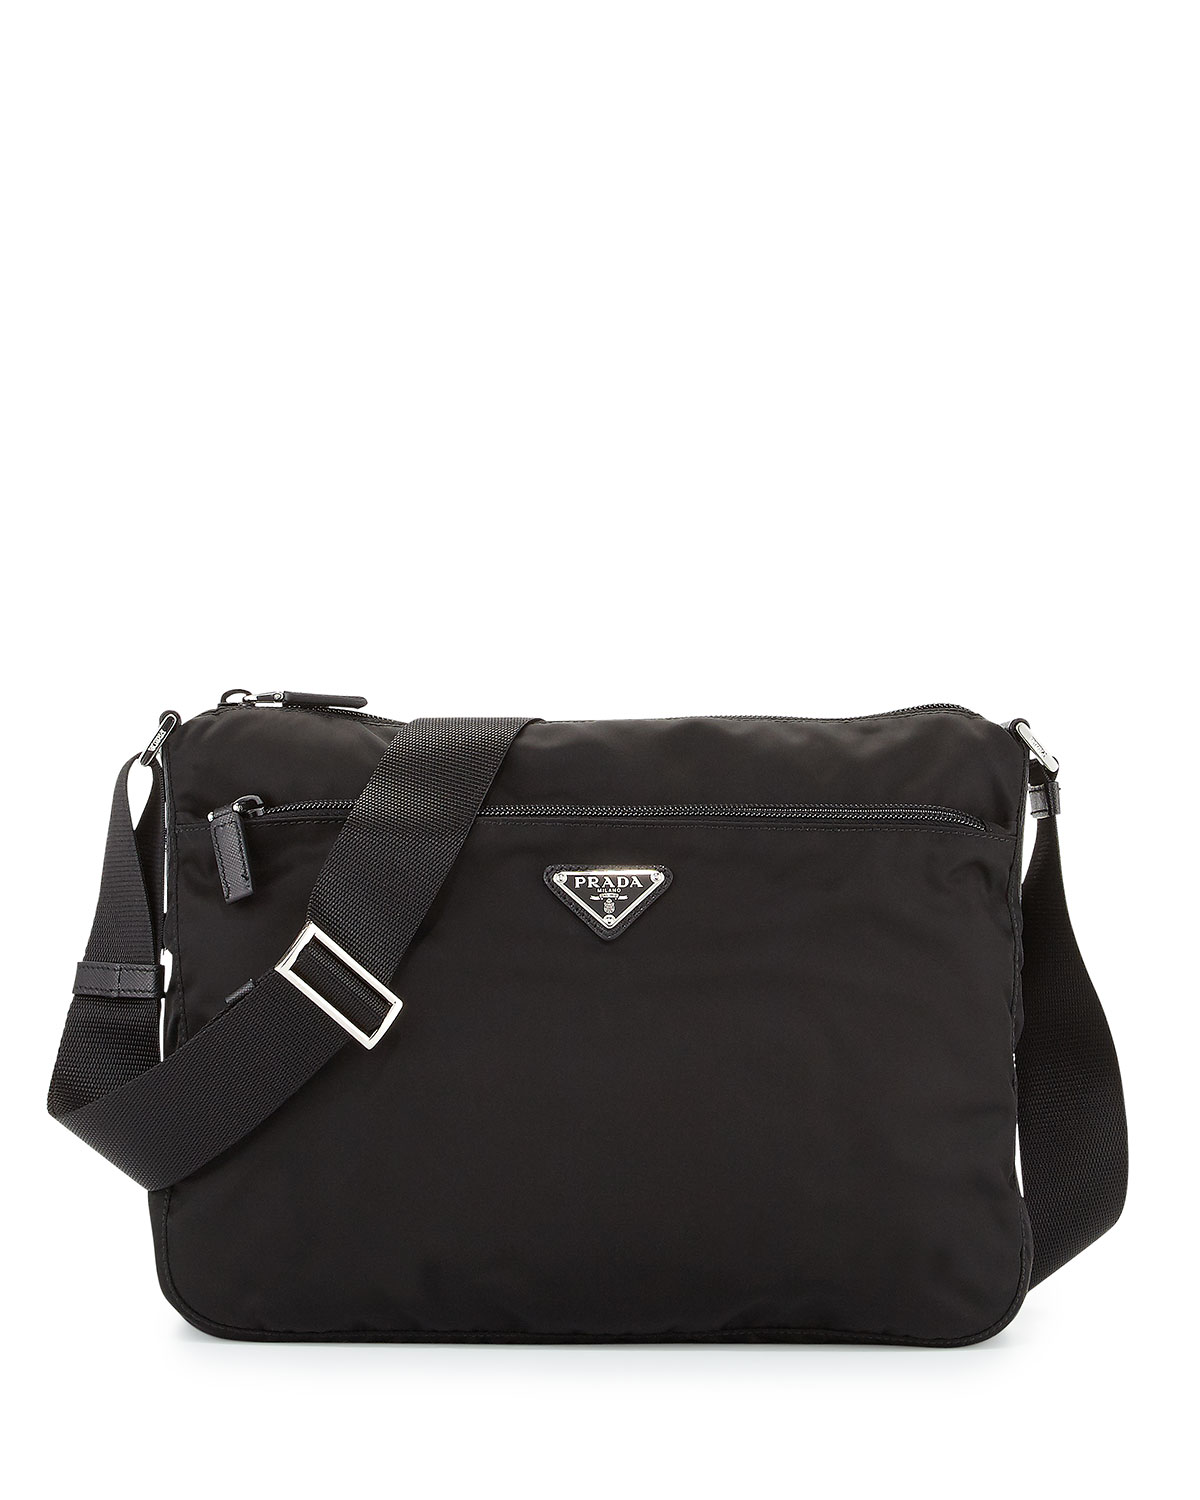 ff03ed400d2f93 Prada Large Nylon Crossbody Bag, Black (Nero) | Neiman Marcus